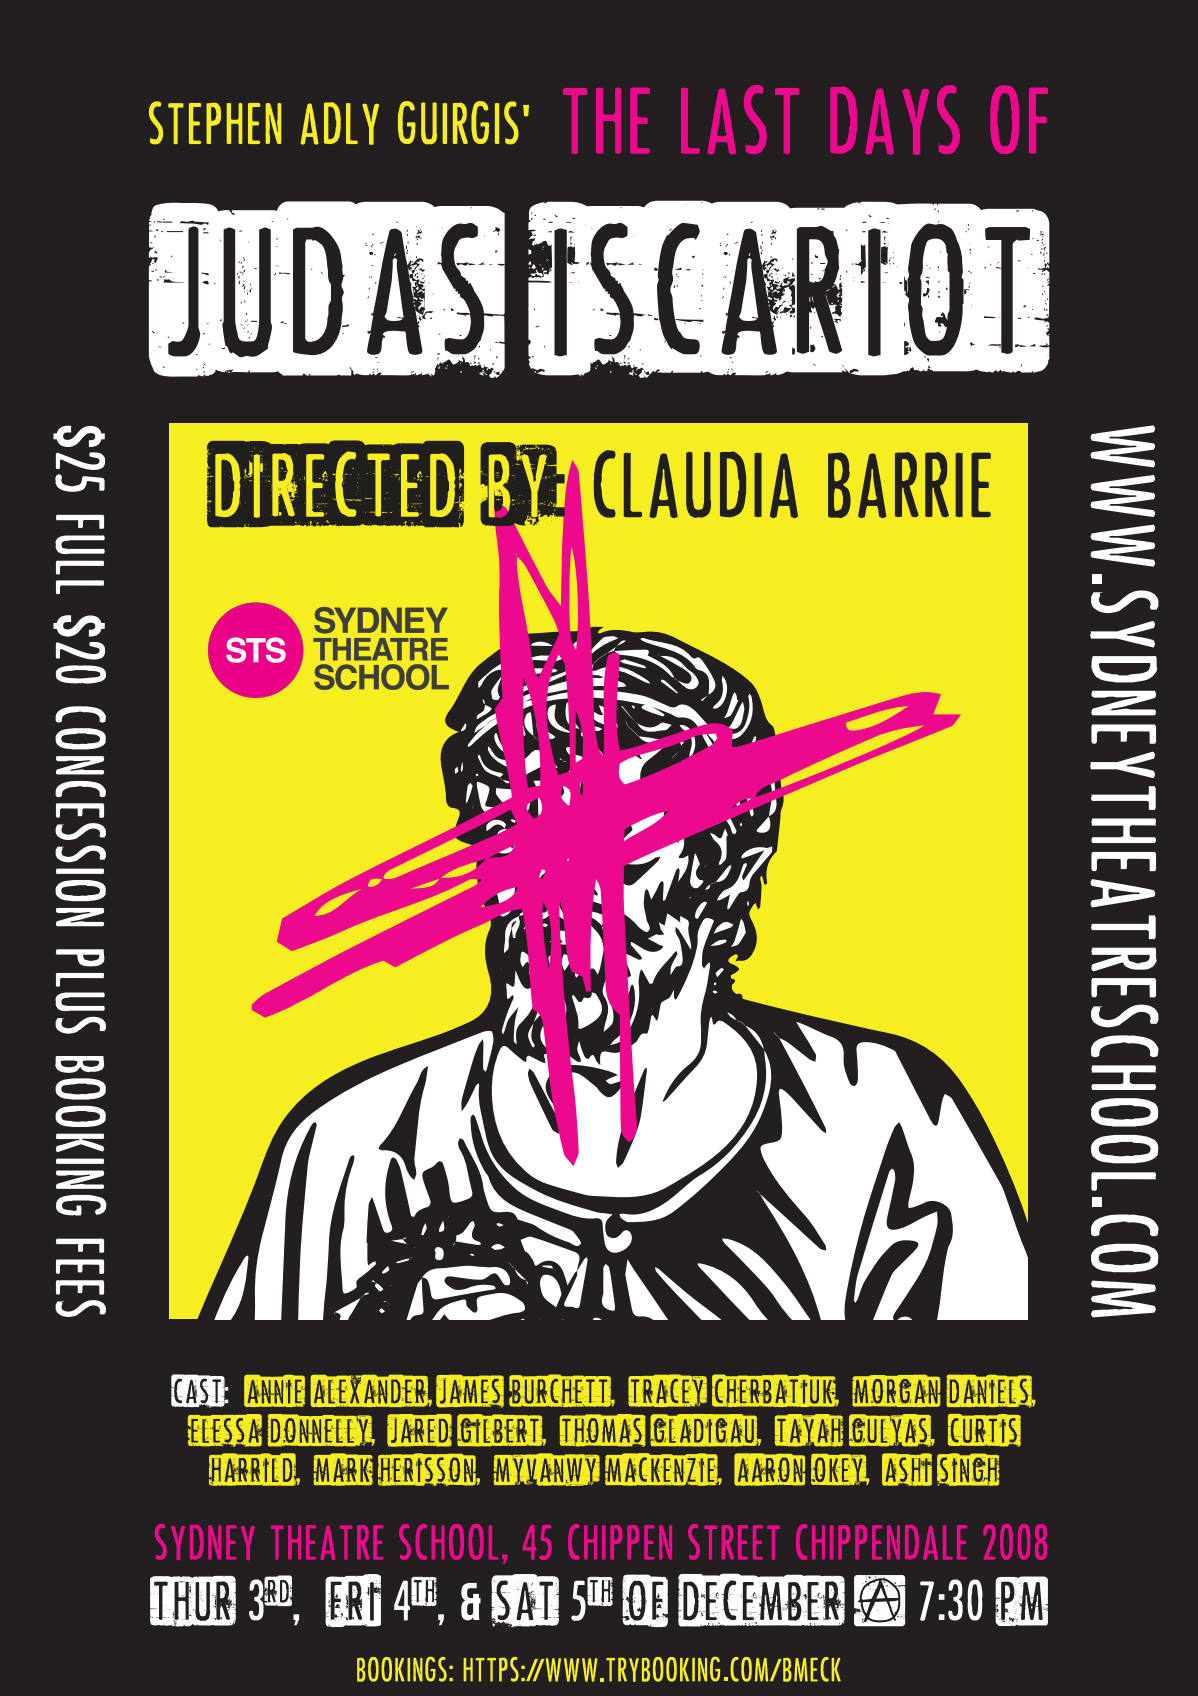 The Last Days of Judas Iscariot Poster